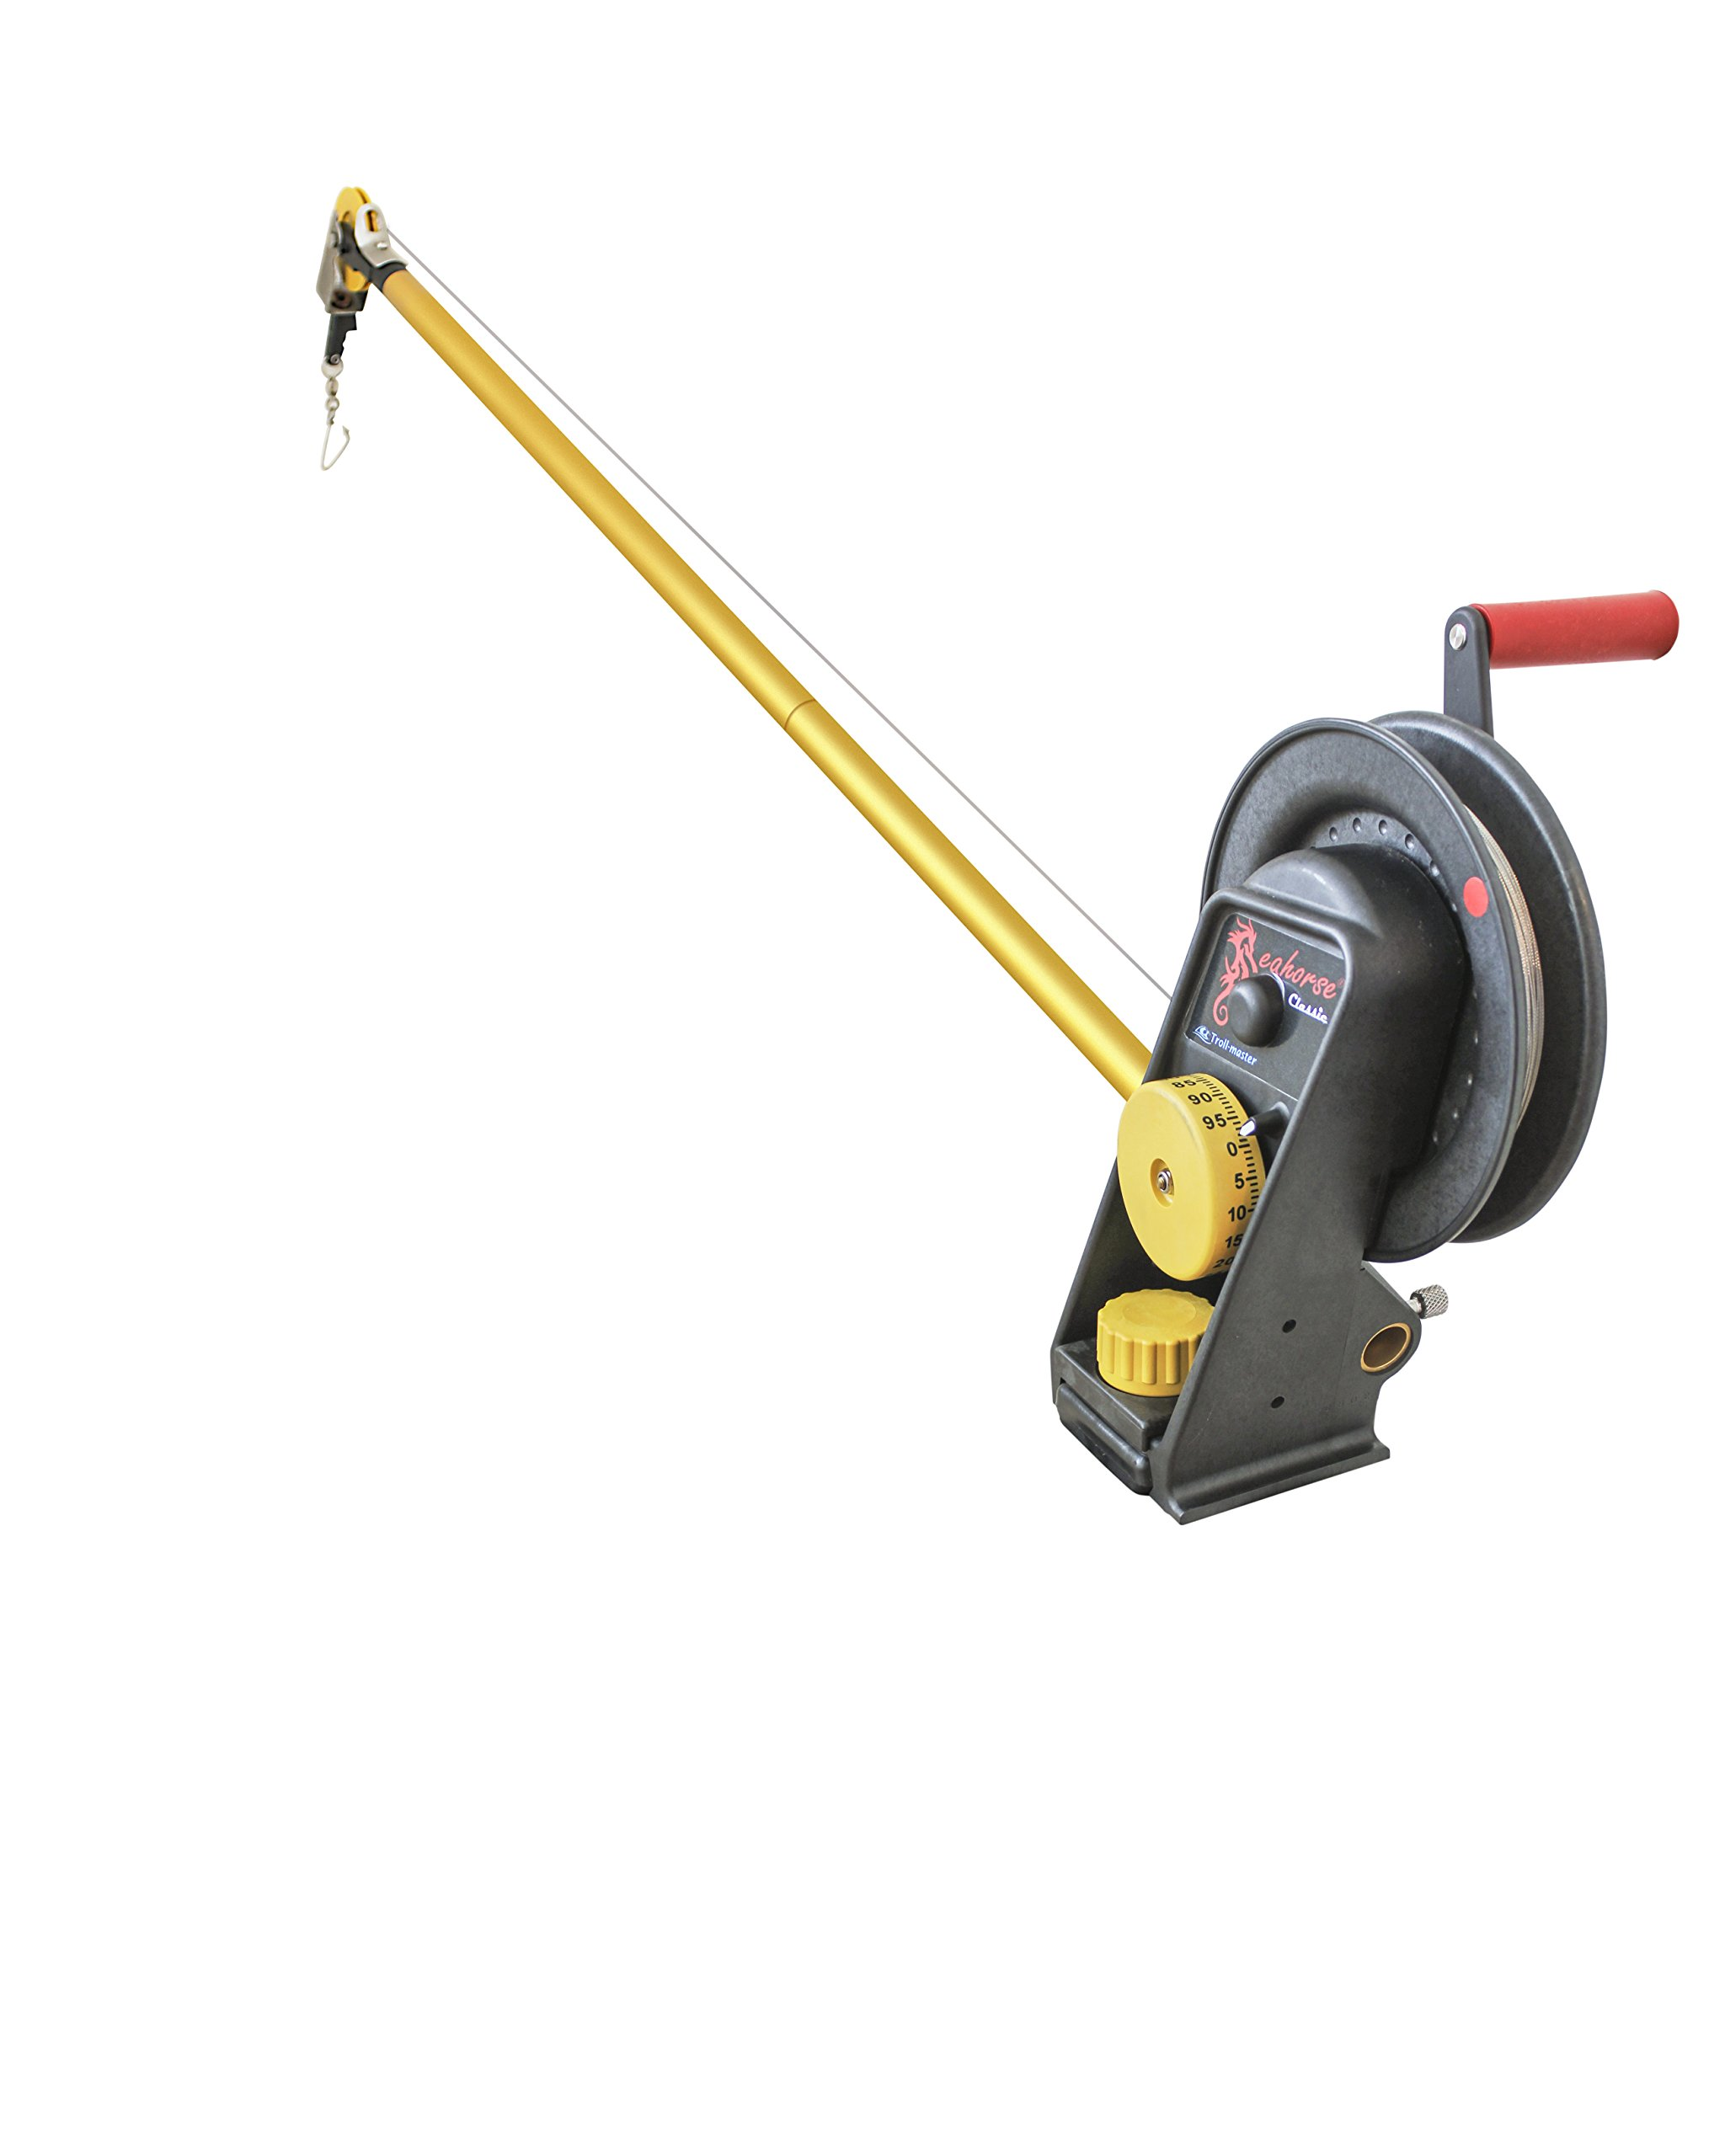 Seahorse Manual Downrigger with extended boom By Troll-master by Seahorse